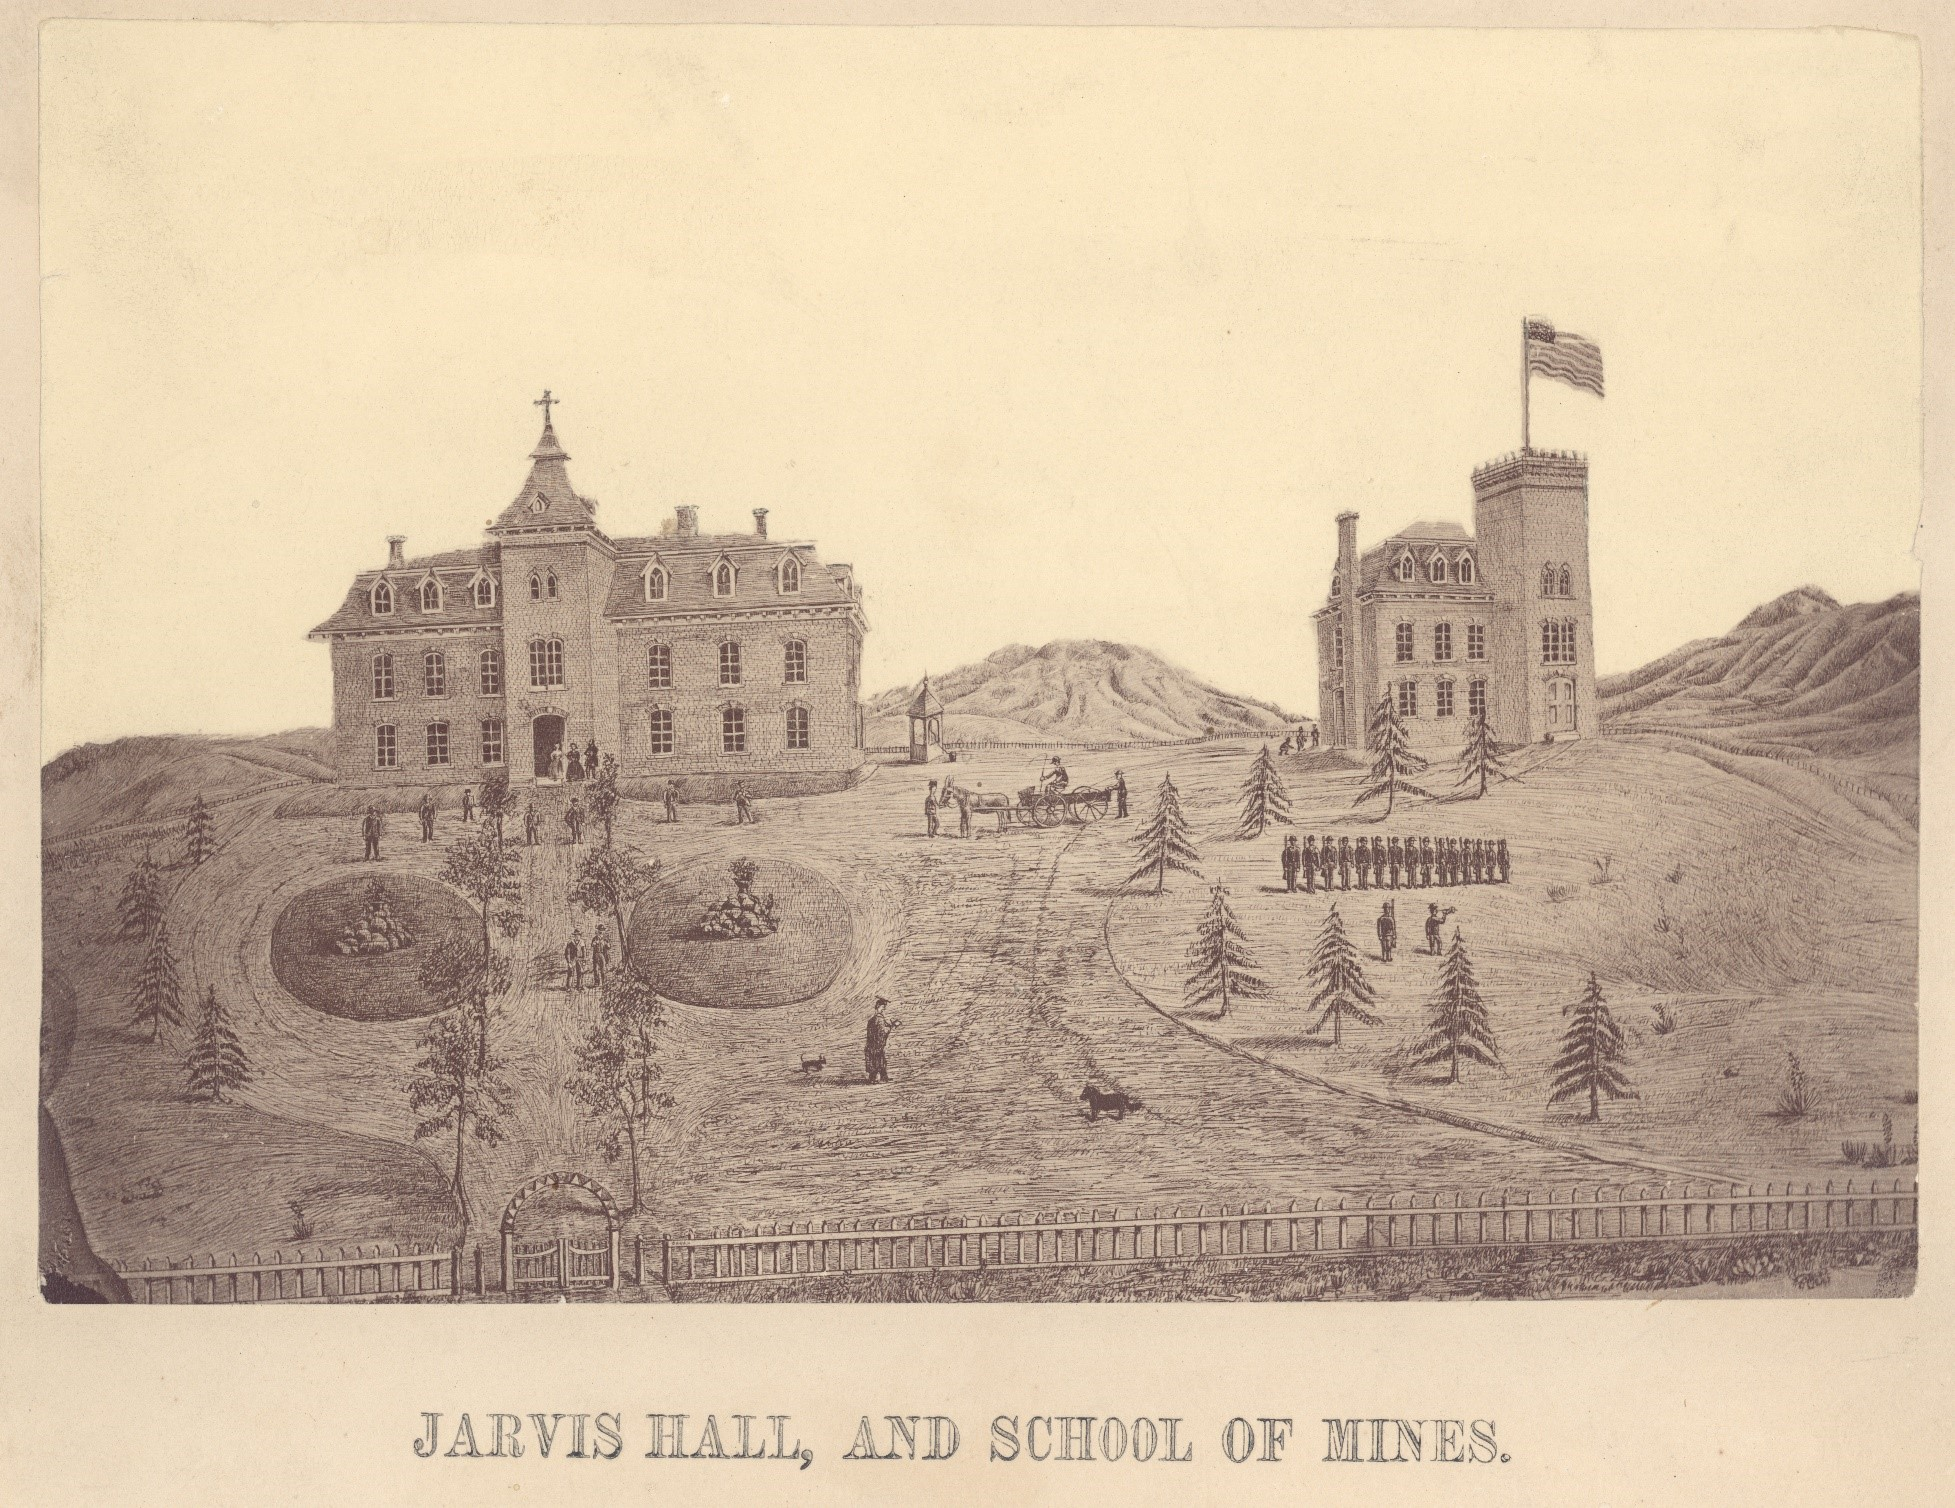 Jarvis Hall and the School of Mines building